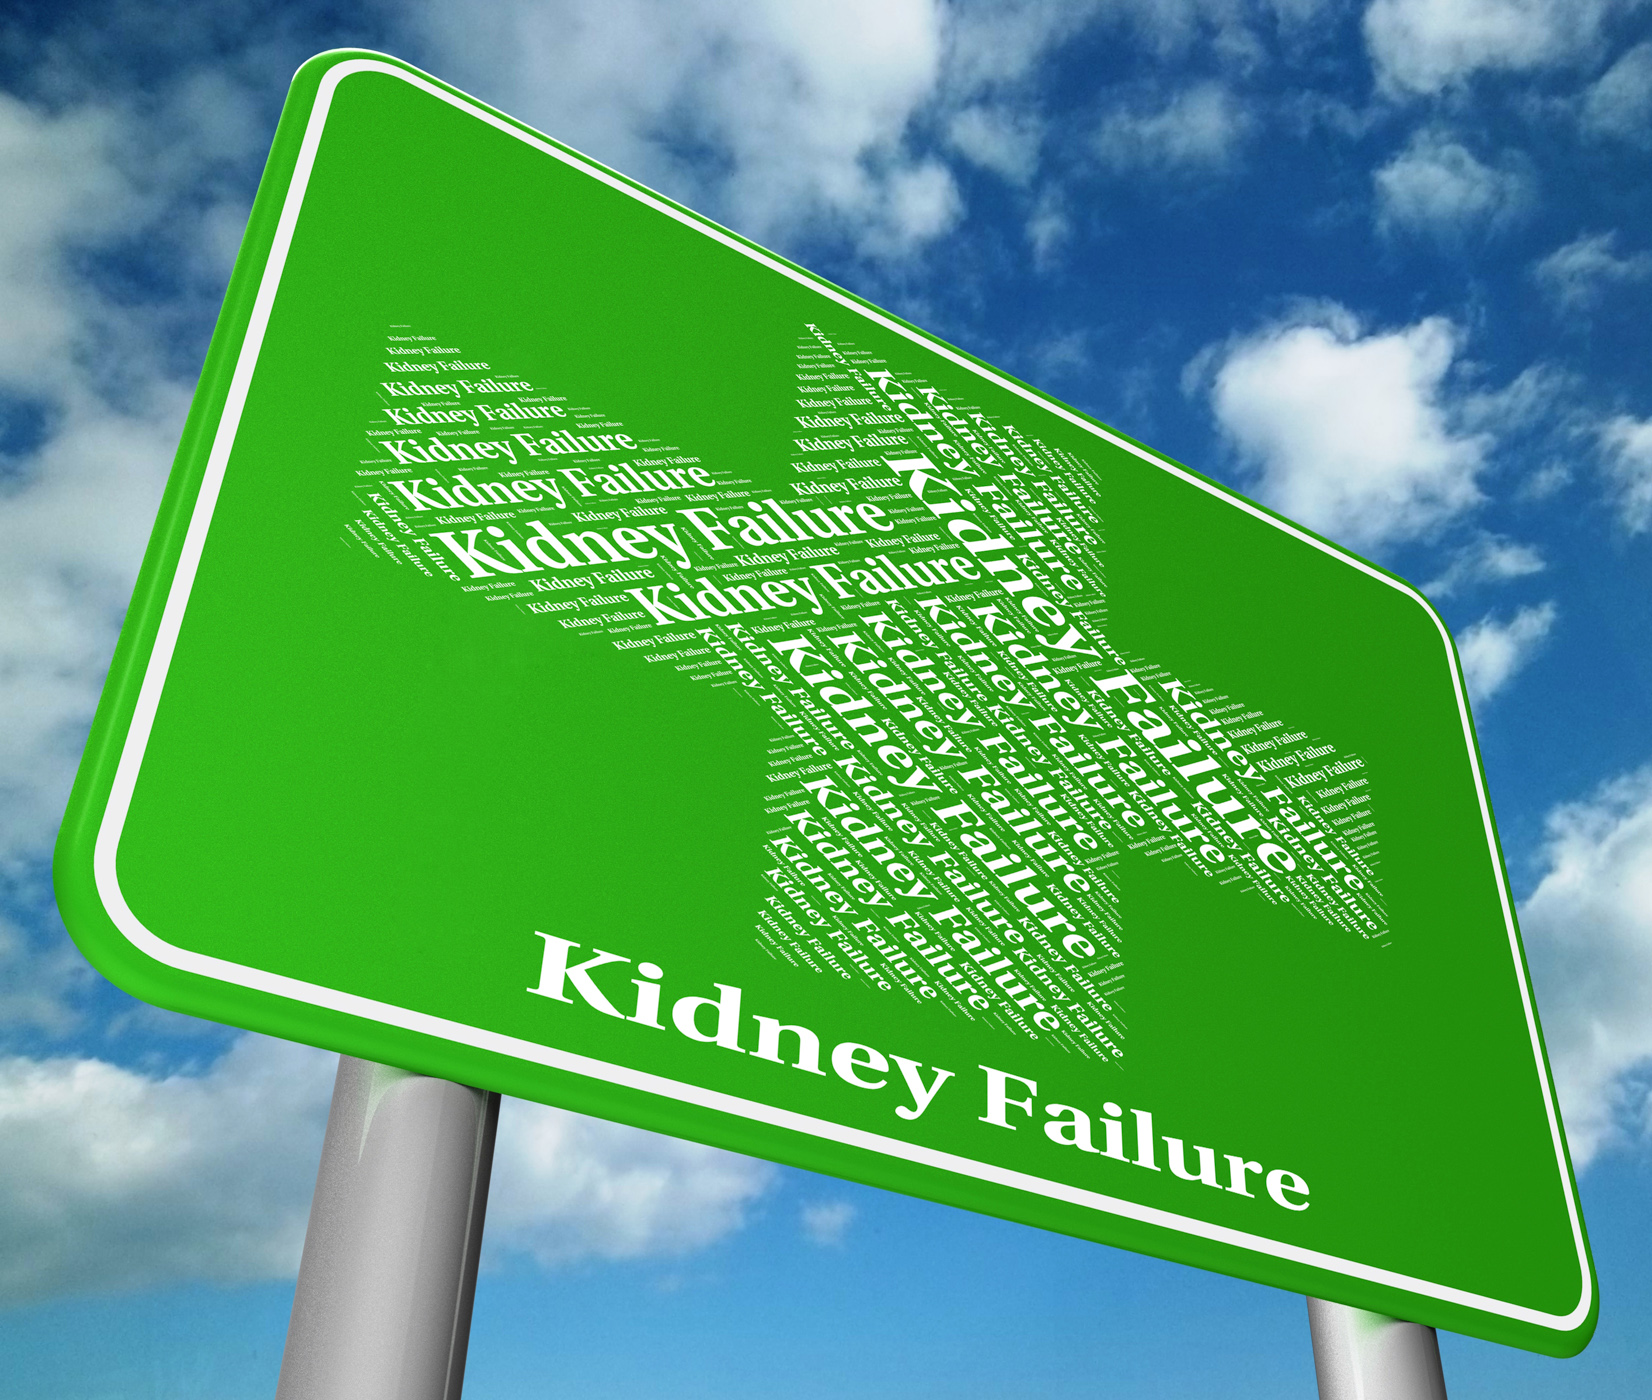 Kidney failure indicates lack of success and advertisement photo